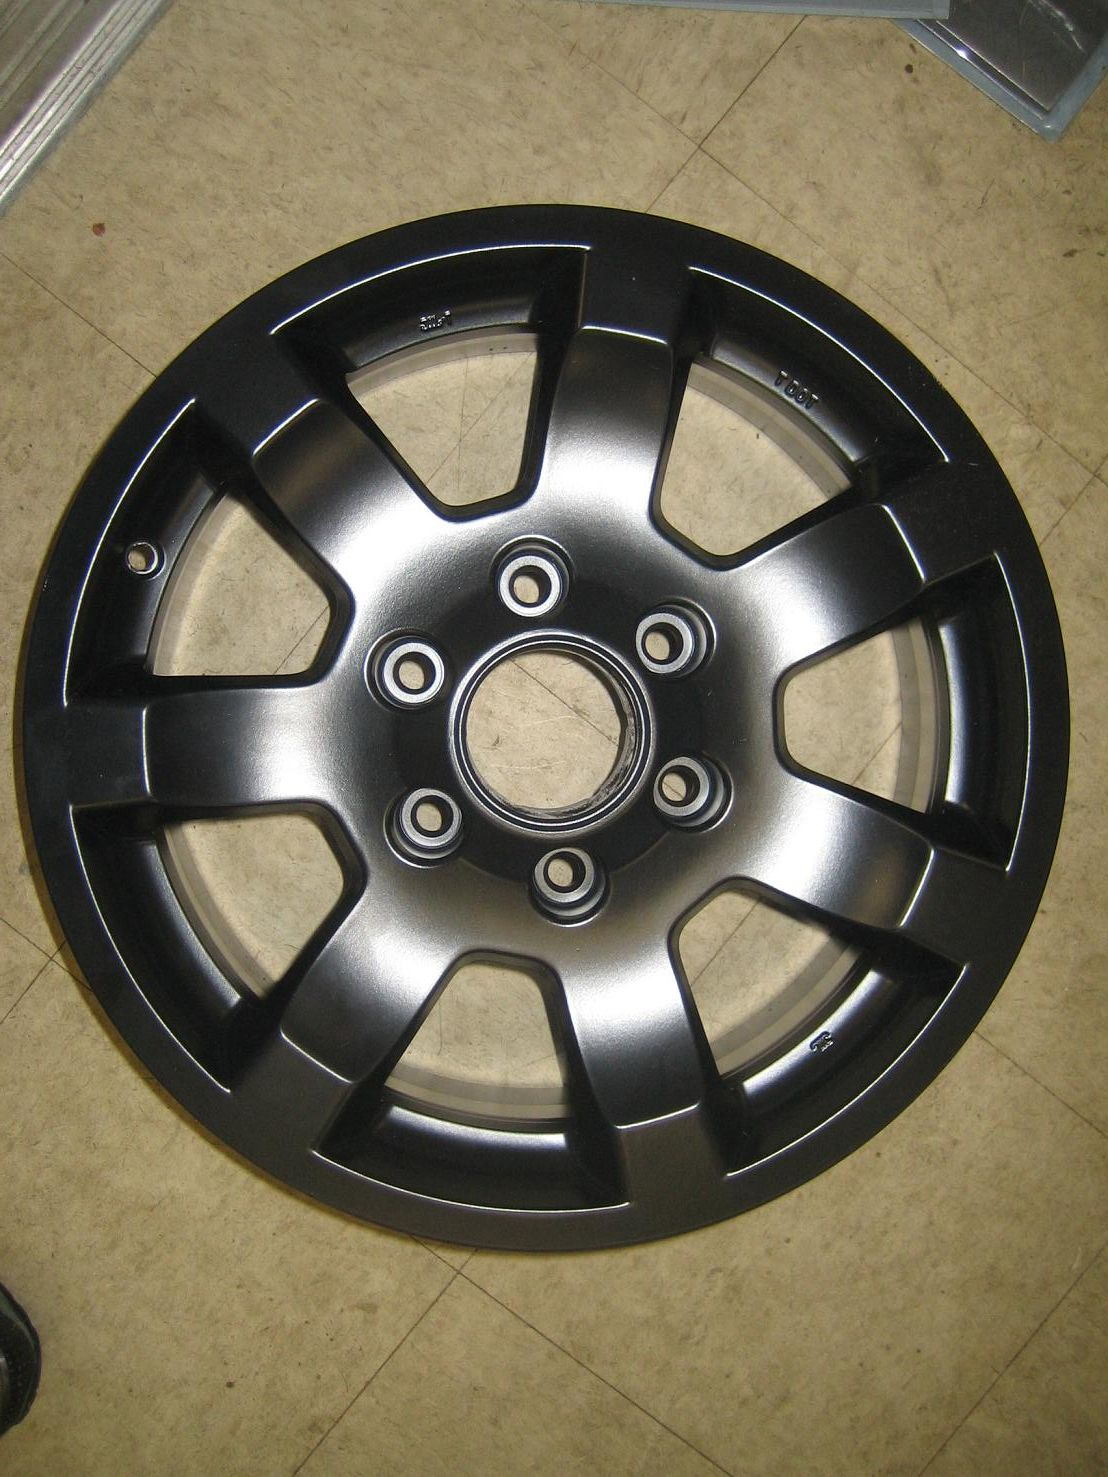 Black Powder Coated Rims Find the Classic Rims of Your